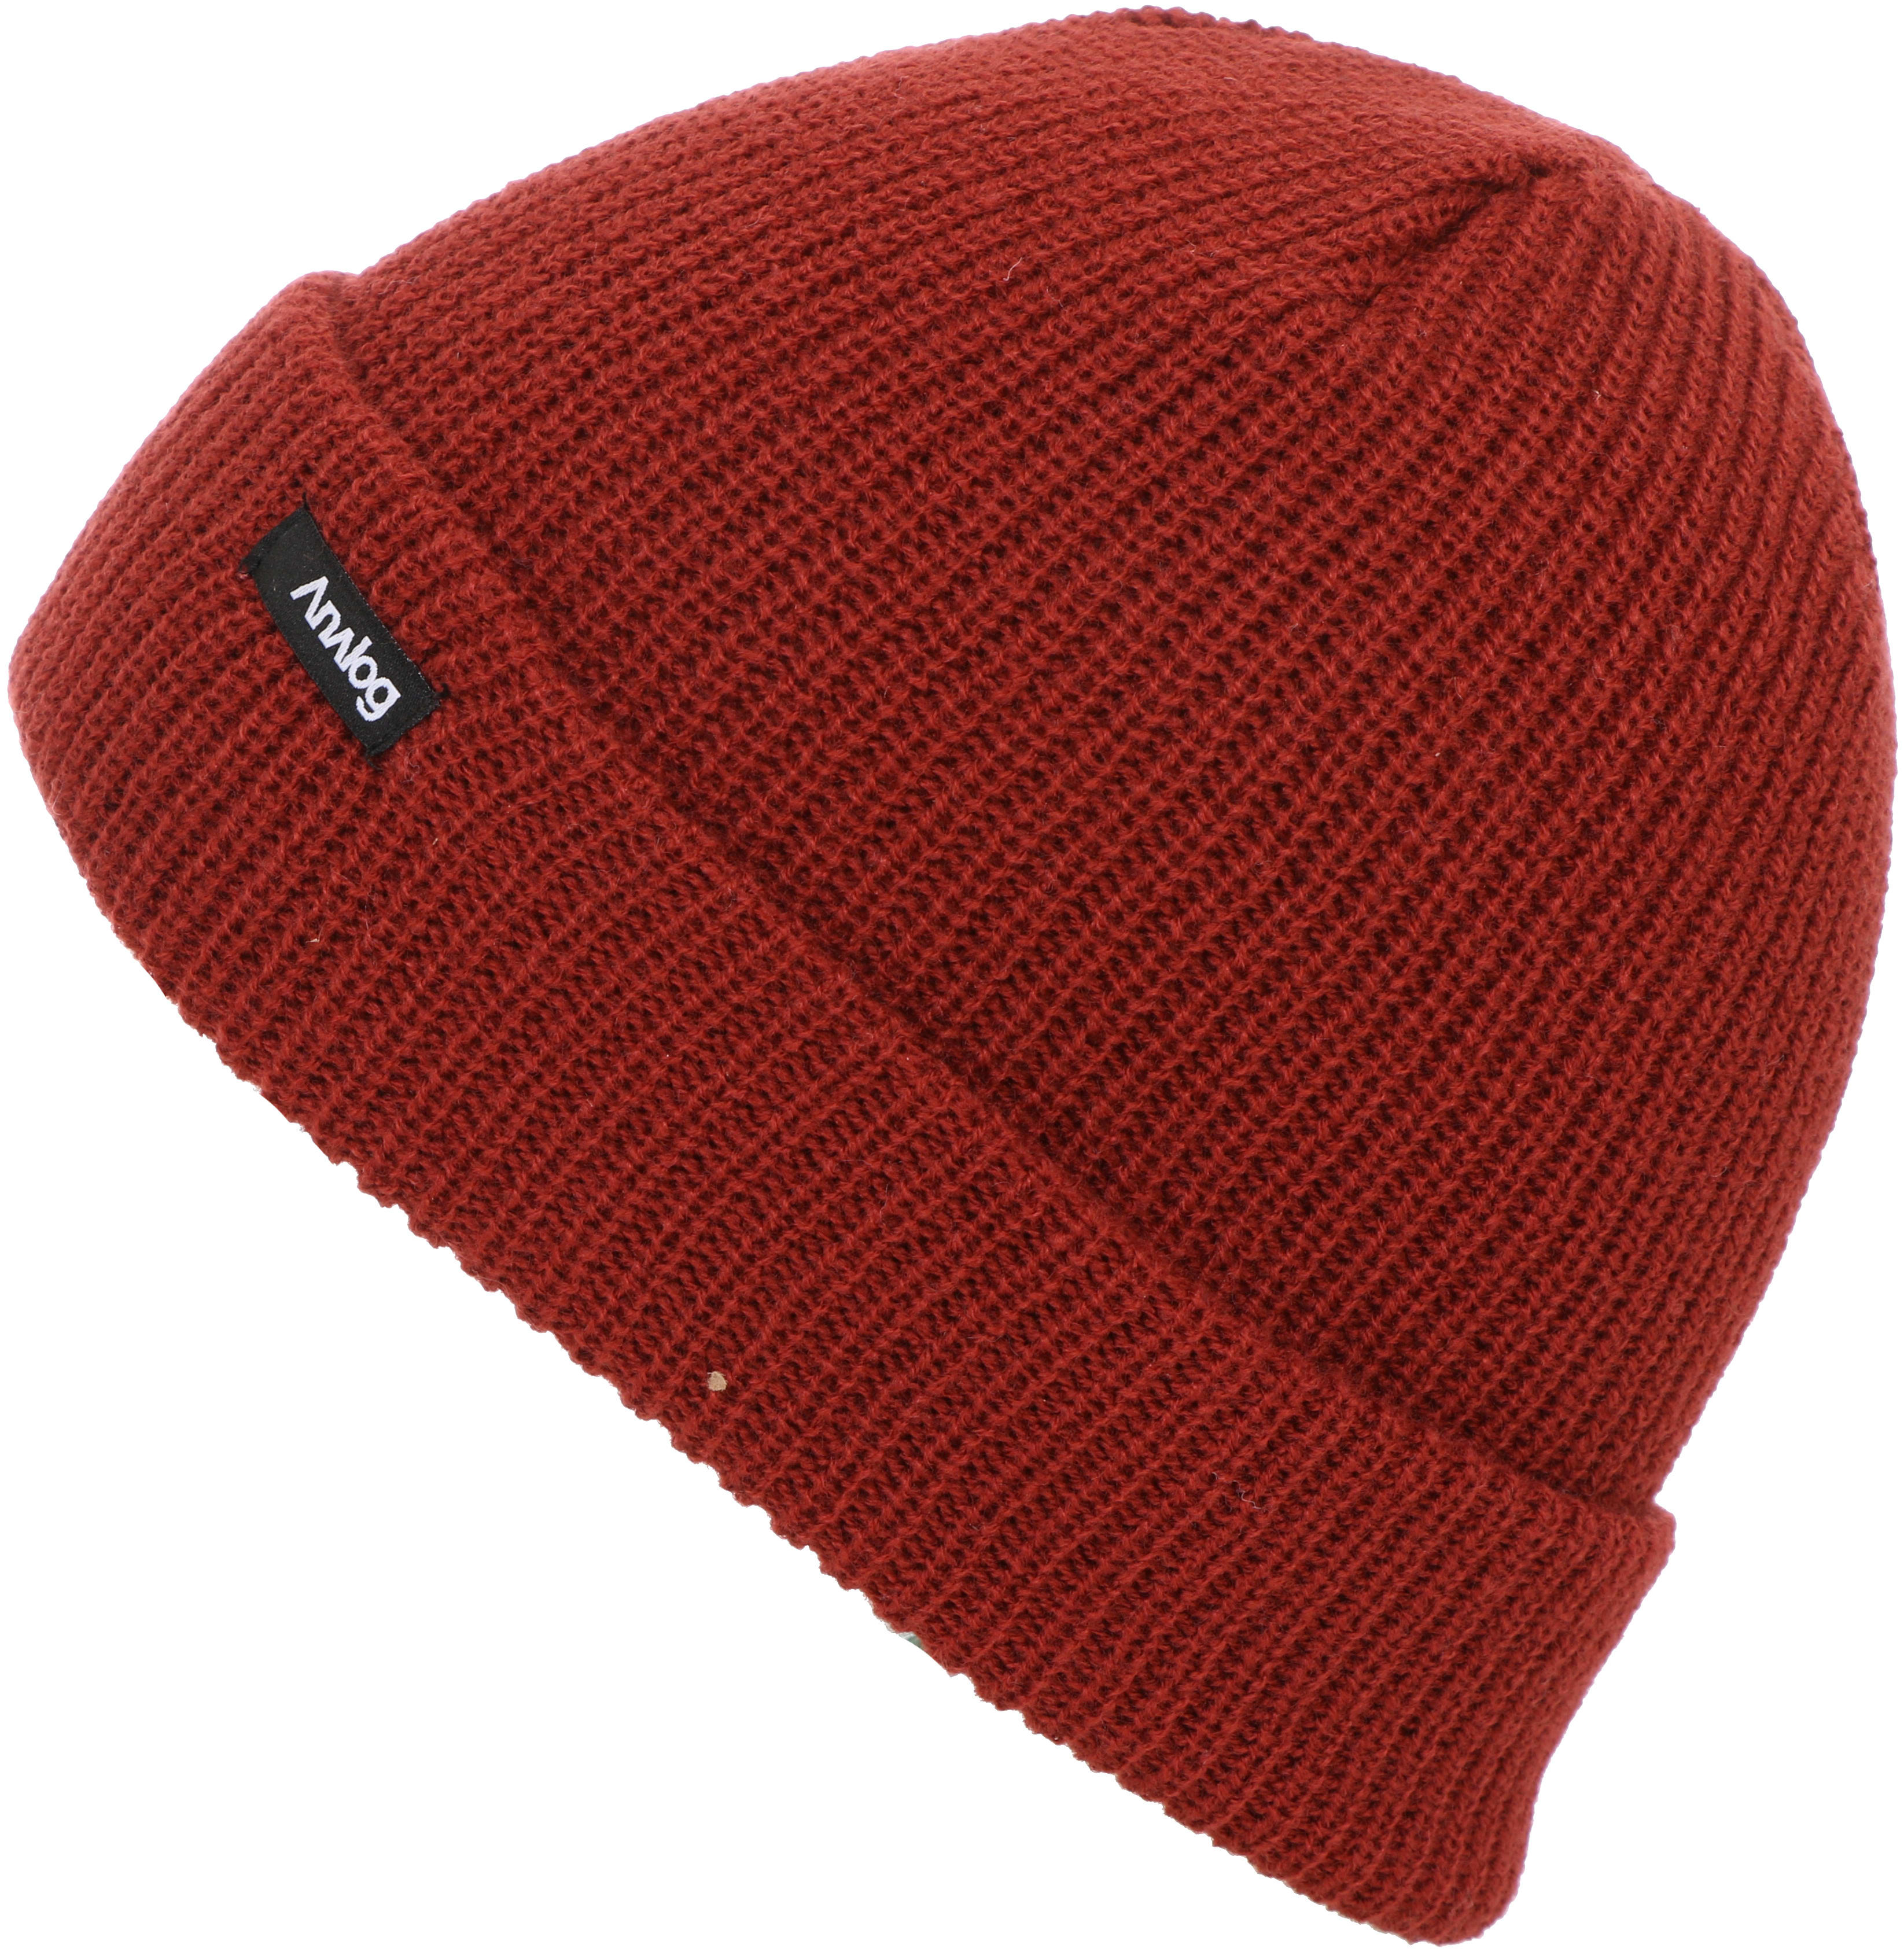 8f977f4a21a31 ... inexpensive beanies mens the house 4d6be 58284